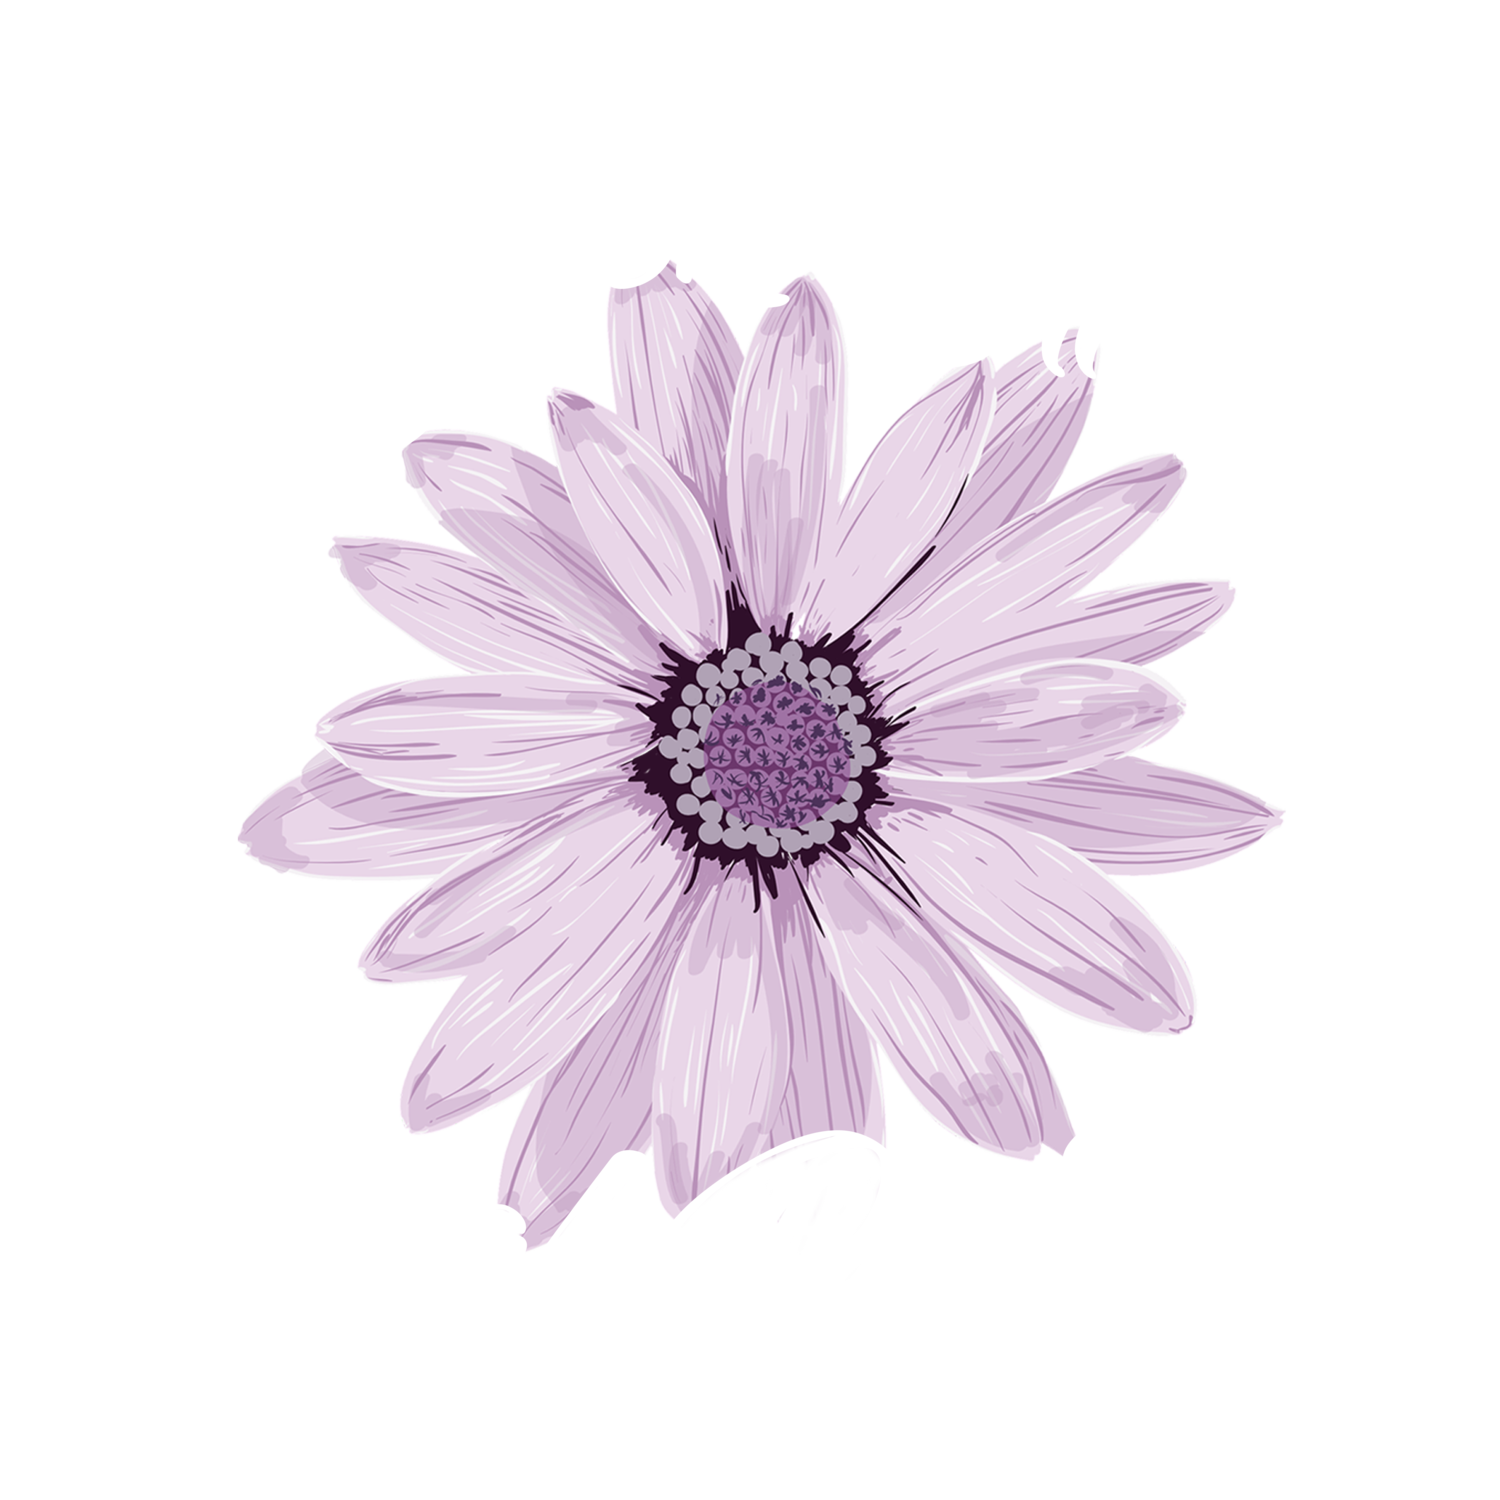 Geek Chic Floral Boutique